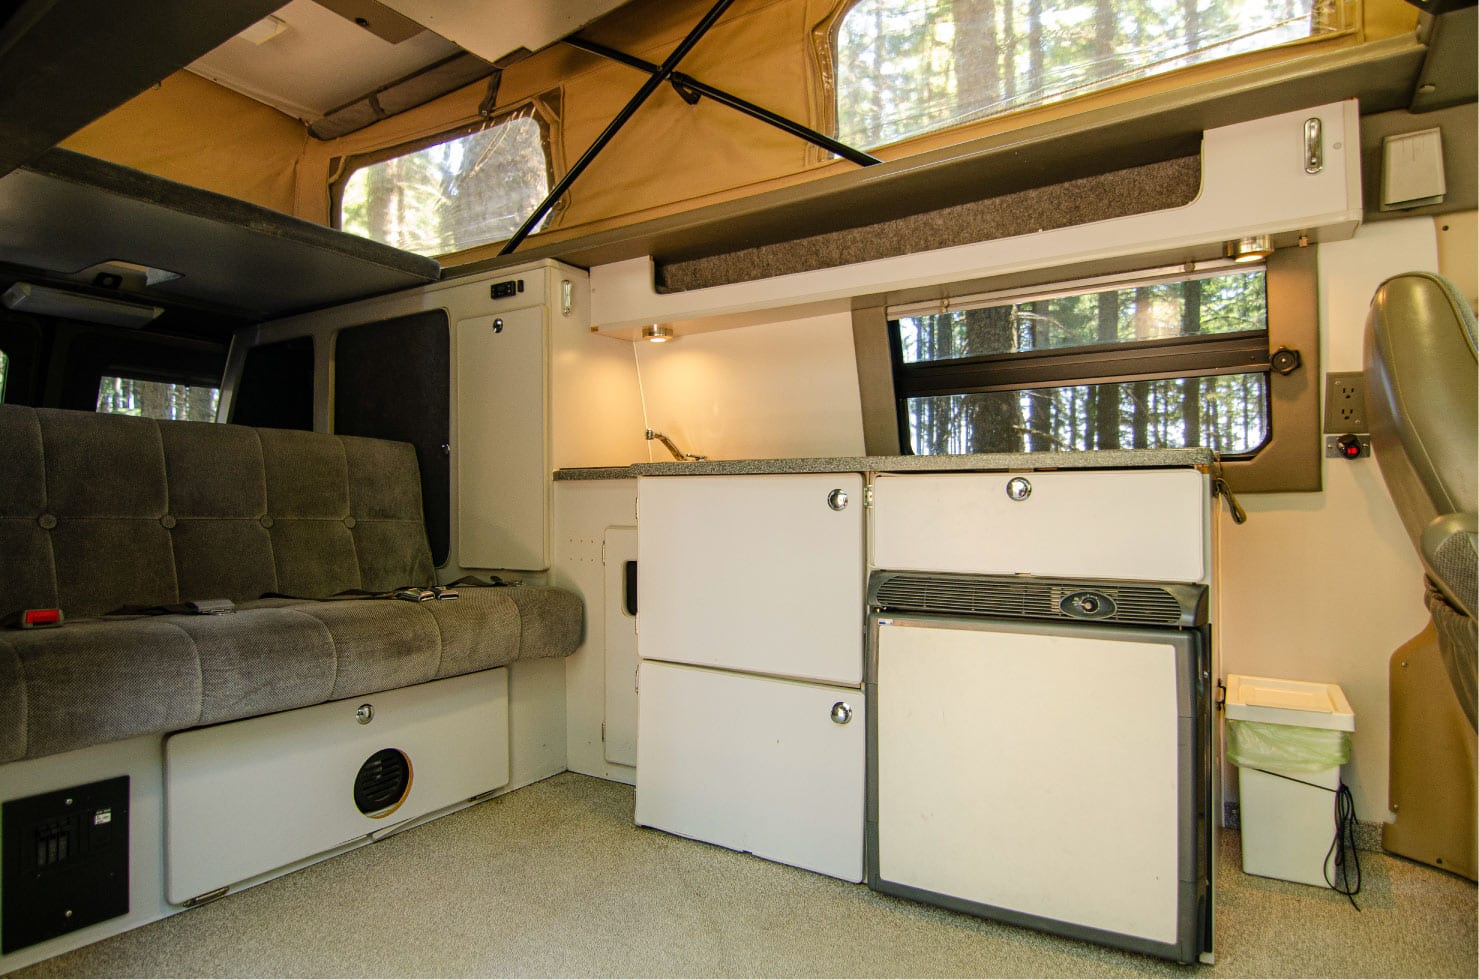 Interior view of a Ford E-Series 4x4 Econoline Sportsmobile EB50 Layout Campervan conversion for sale